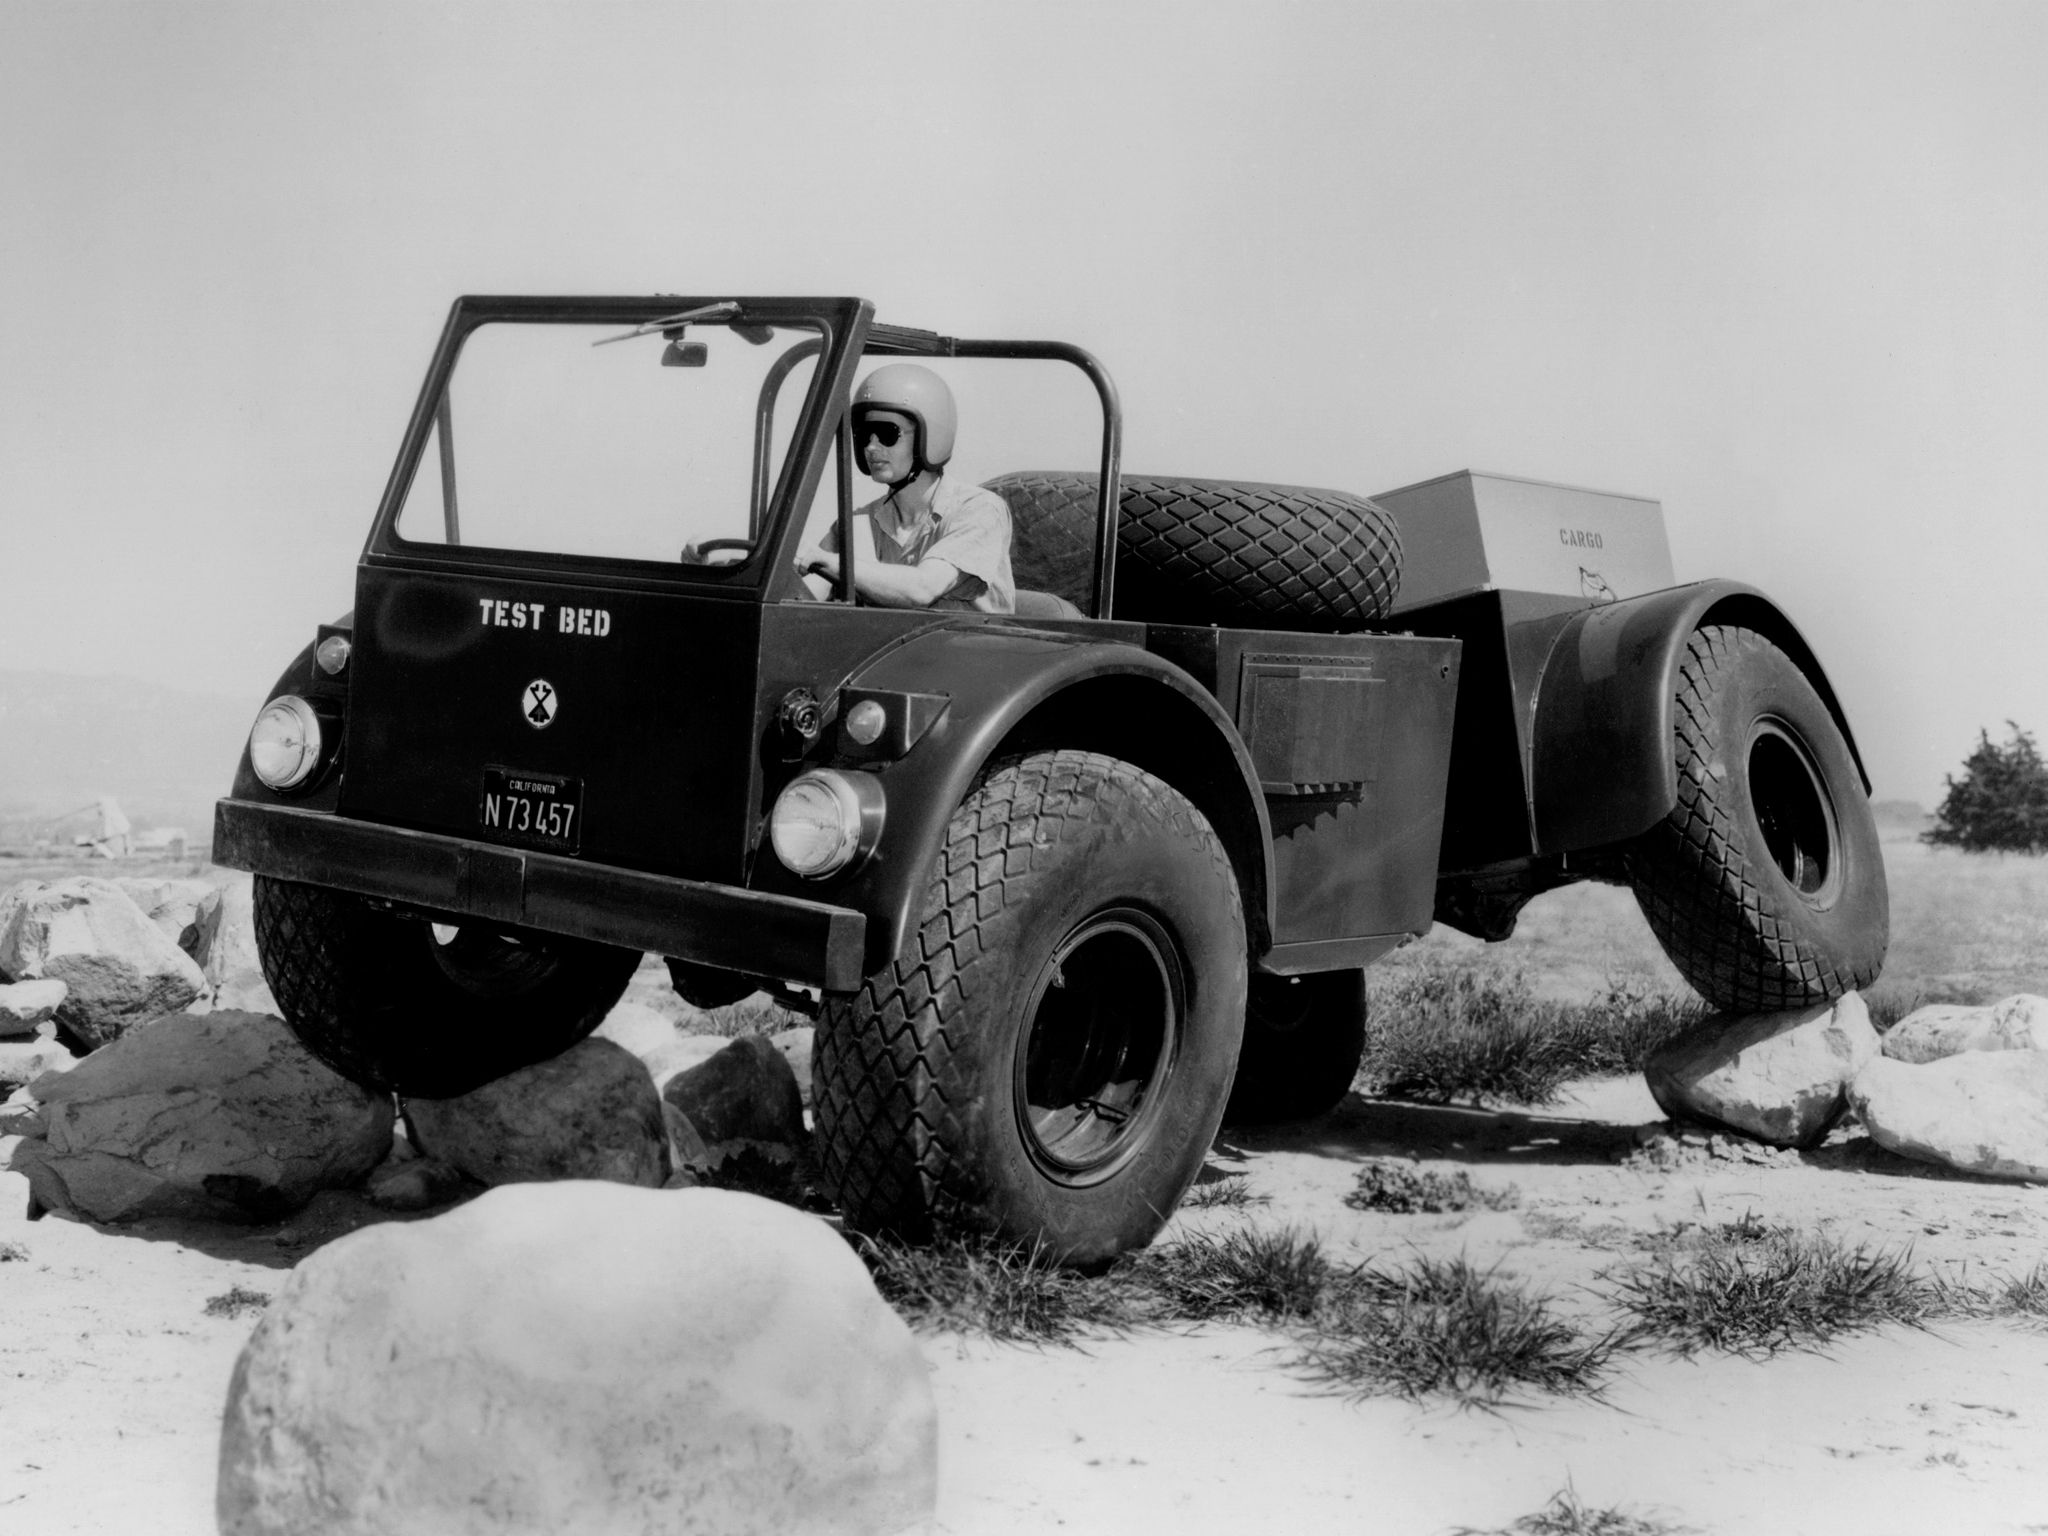 1964 chevrolet sidewinder prototype 4x4 offroad military truck